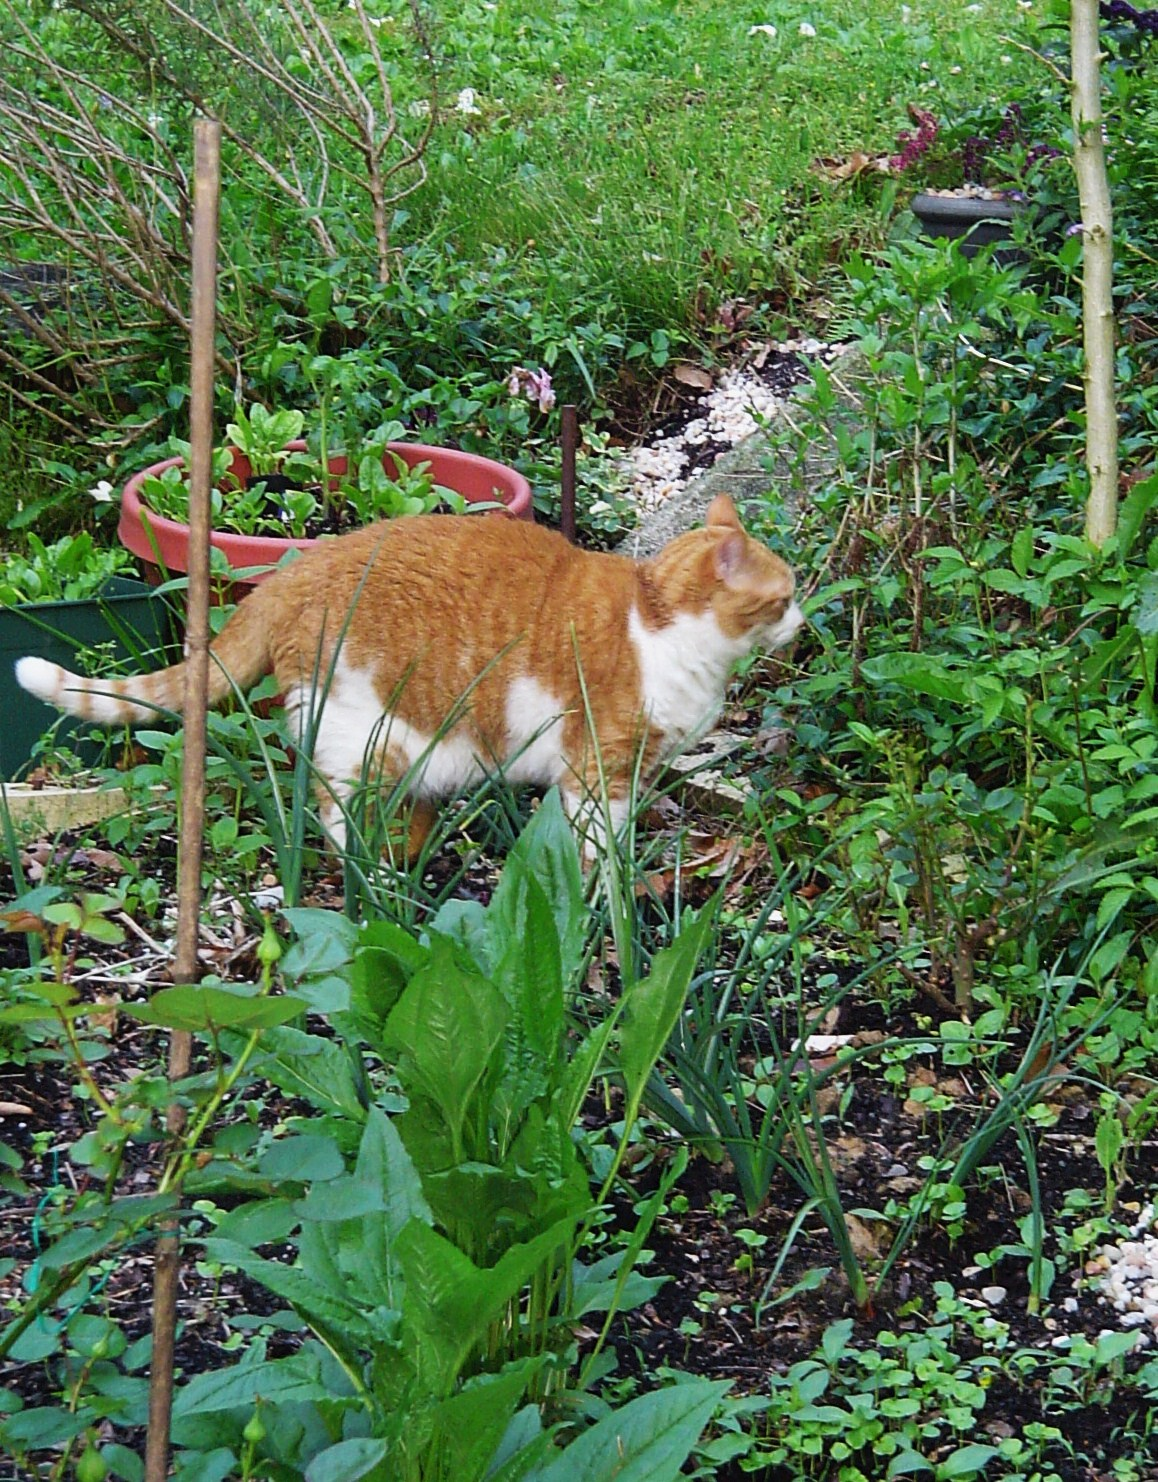 Some of those weeds are edible...